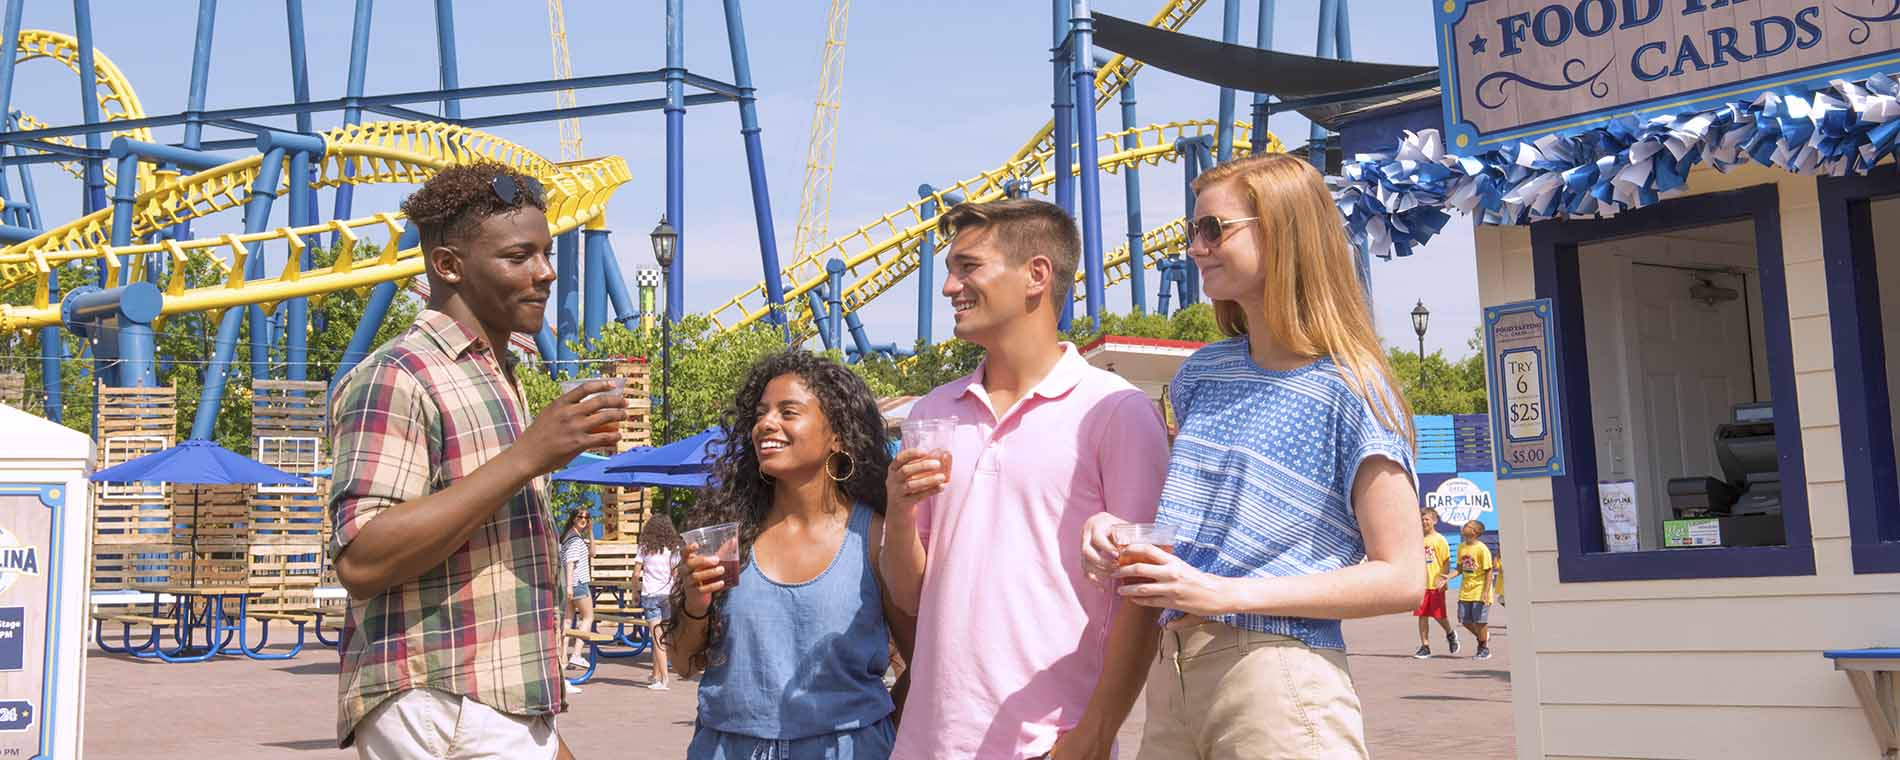 Things to do in Charlotte at Carowinds